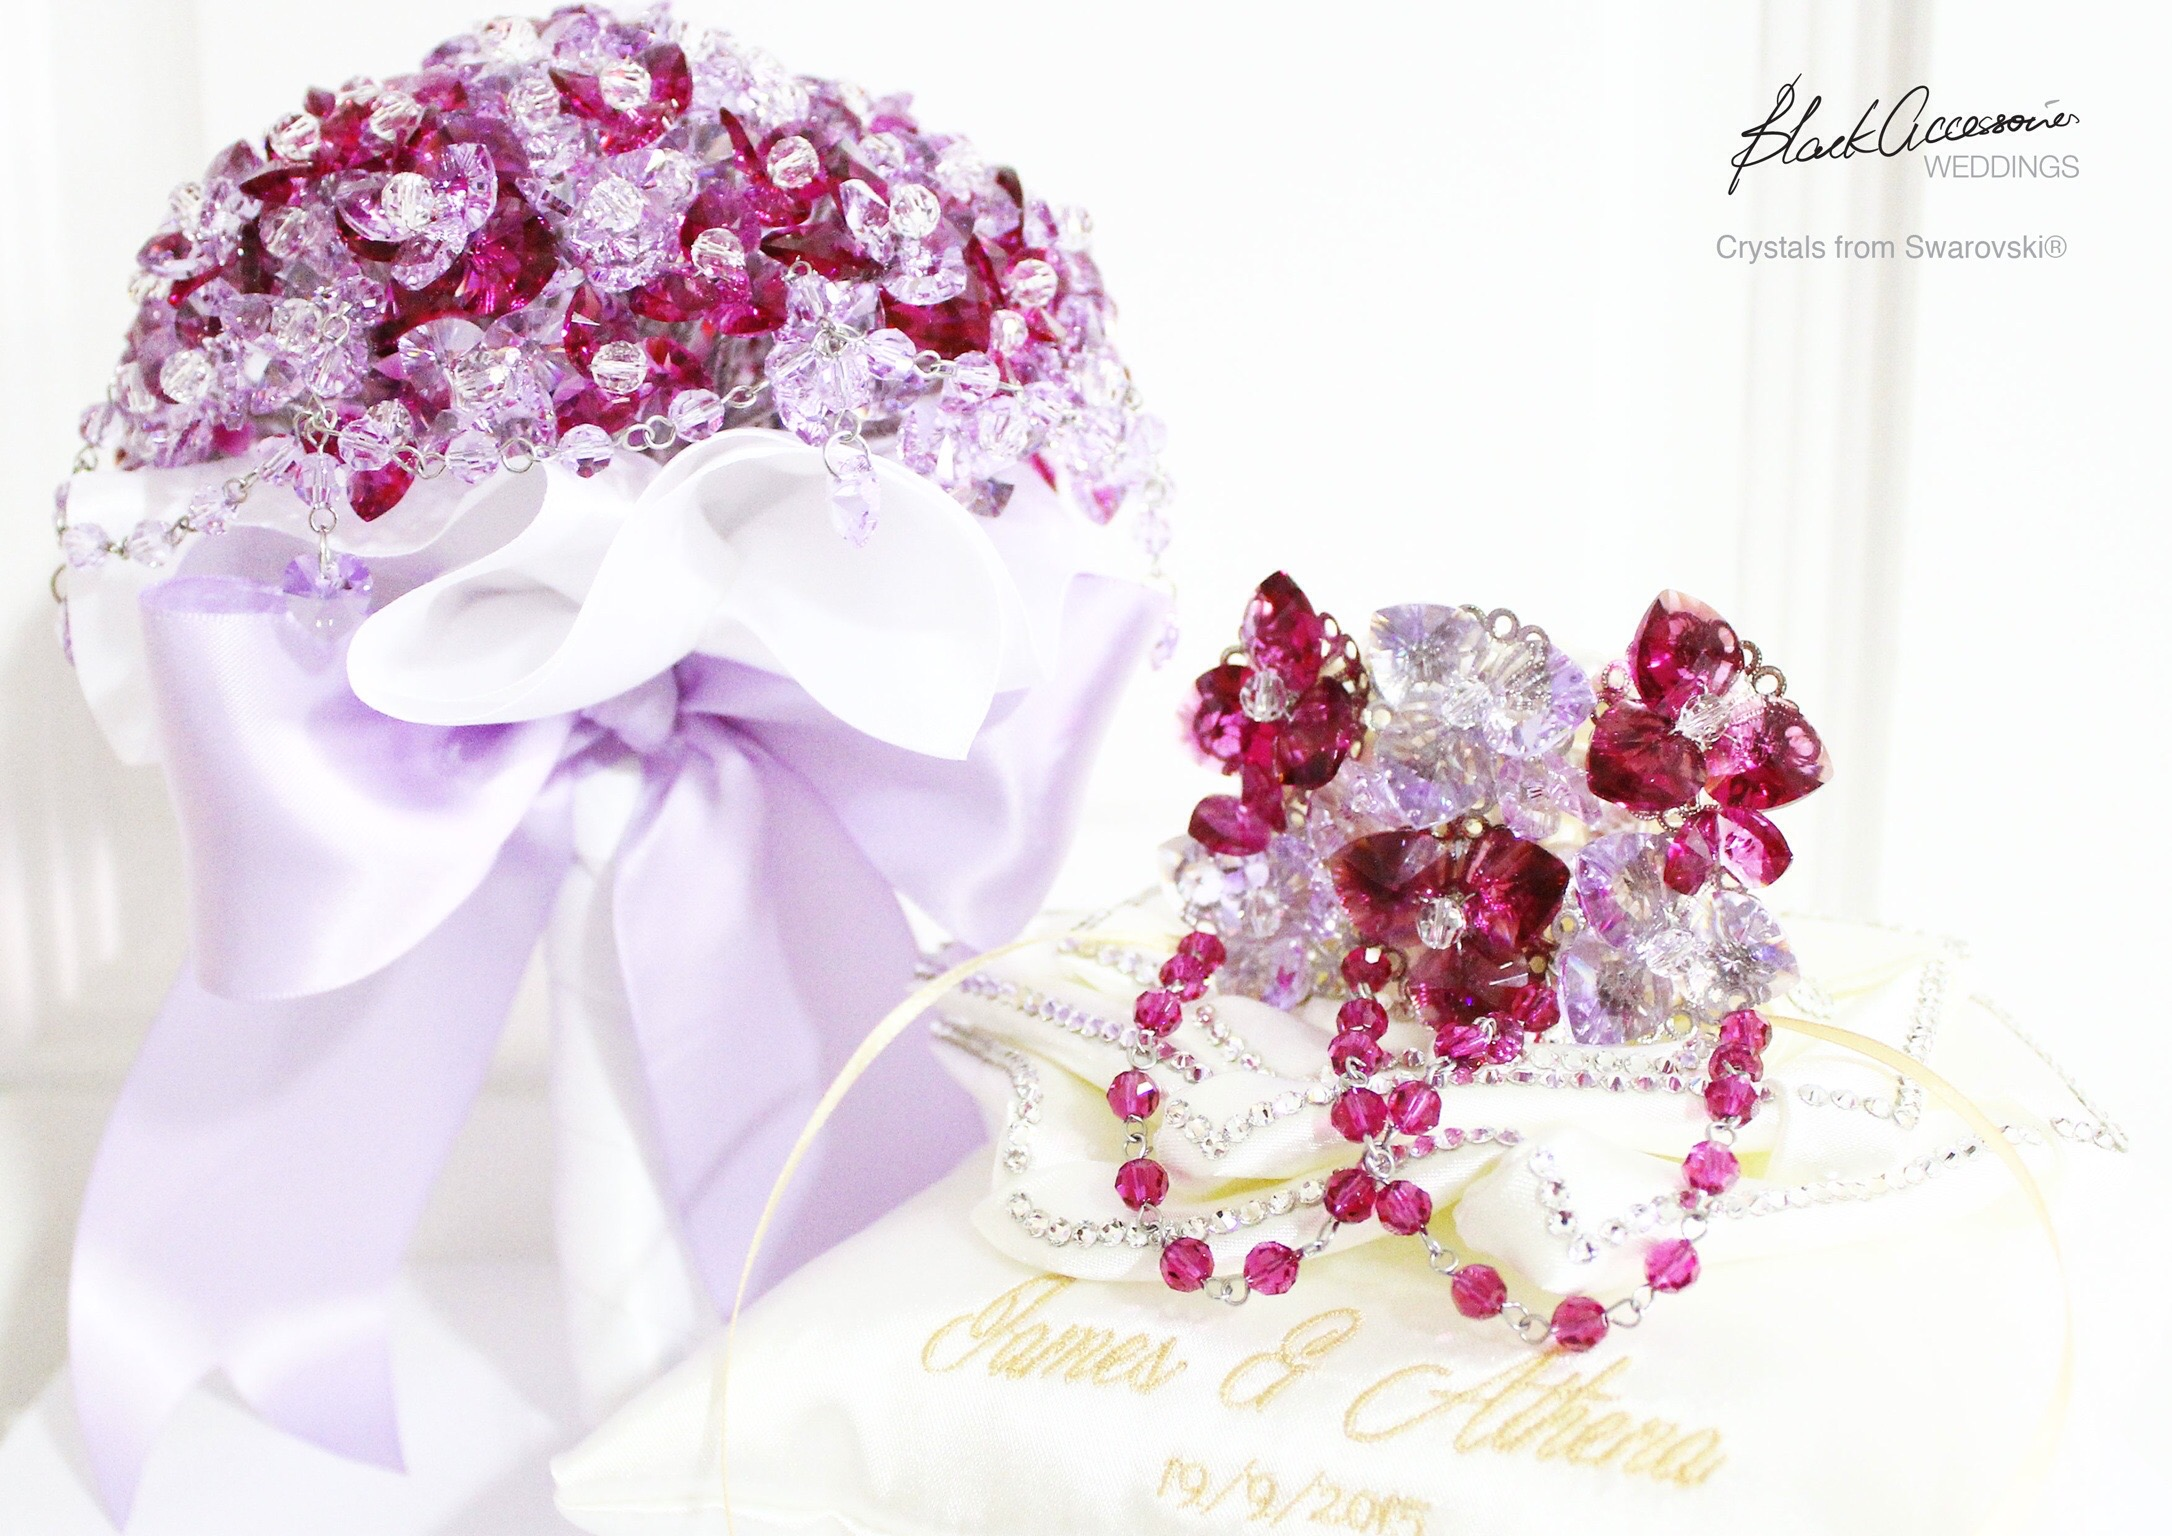 Crystals Themed Weddings by Blackaccessories, specialises in Crystal ...